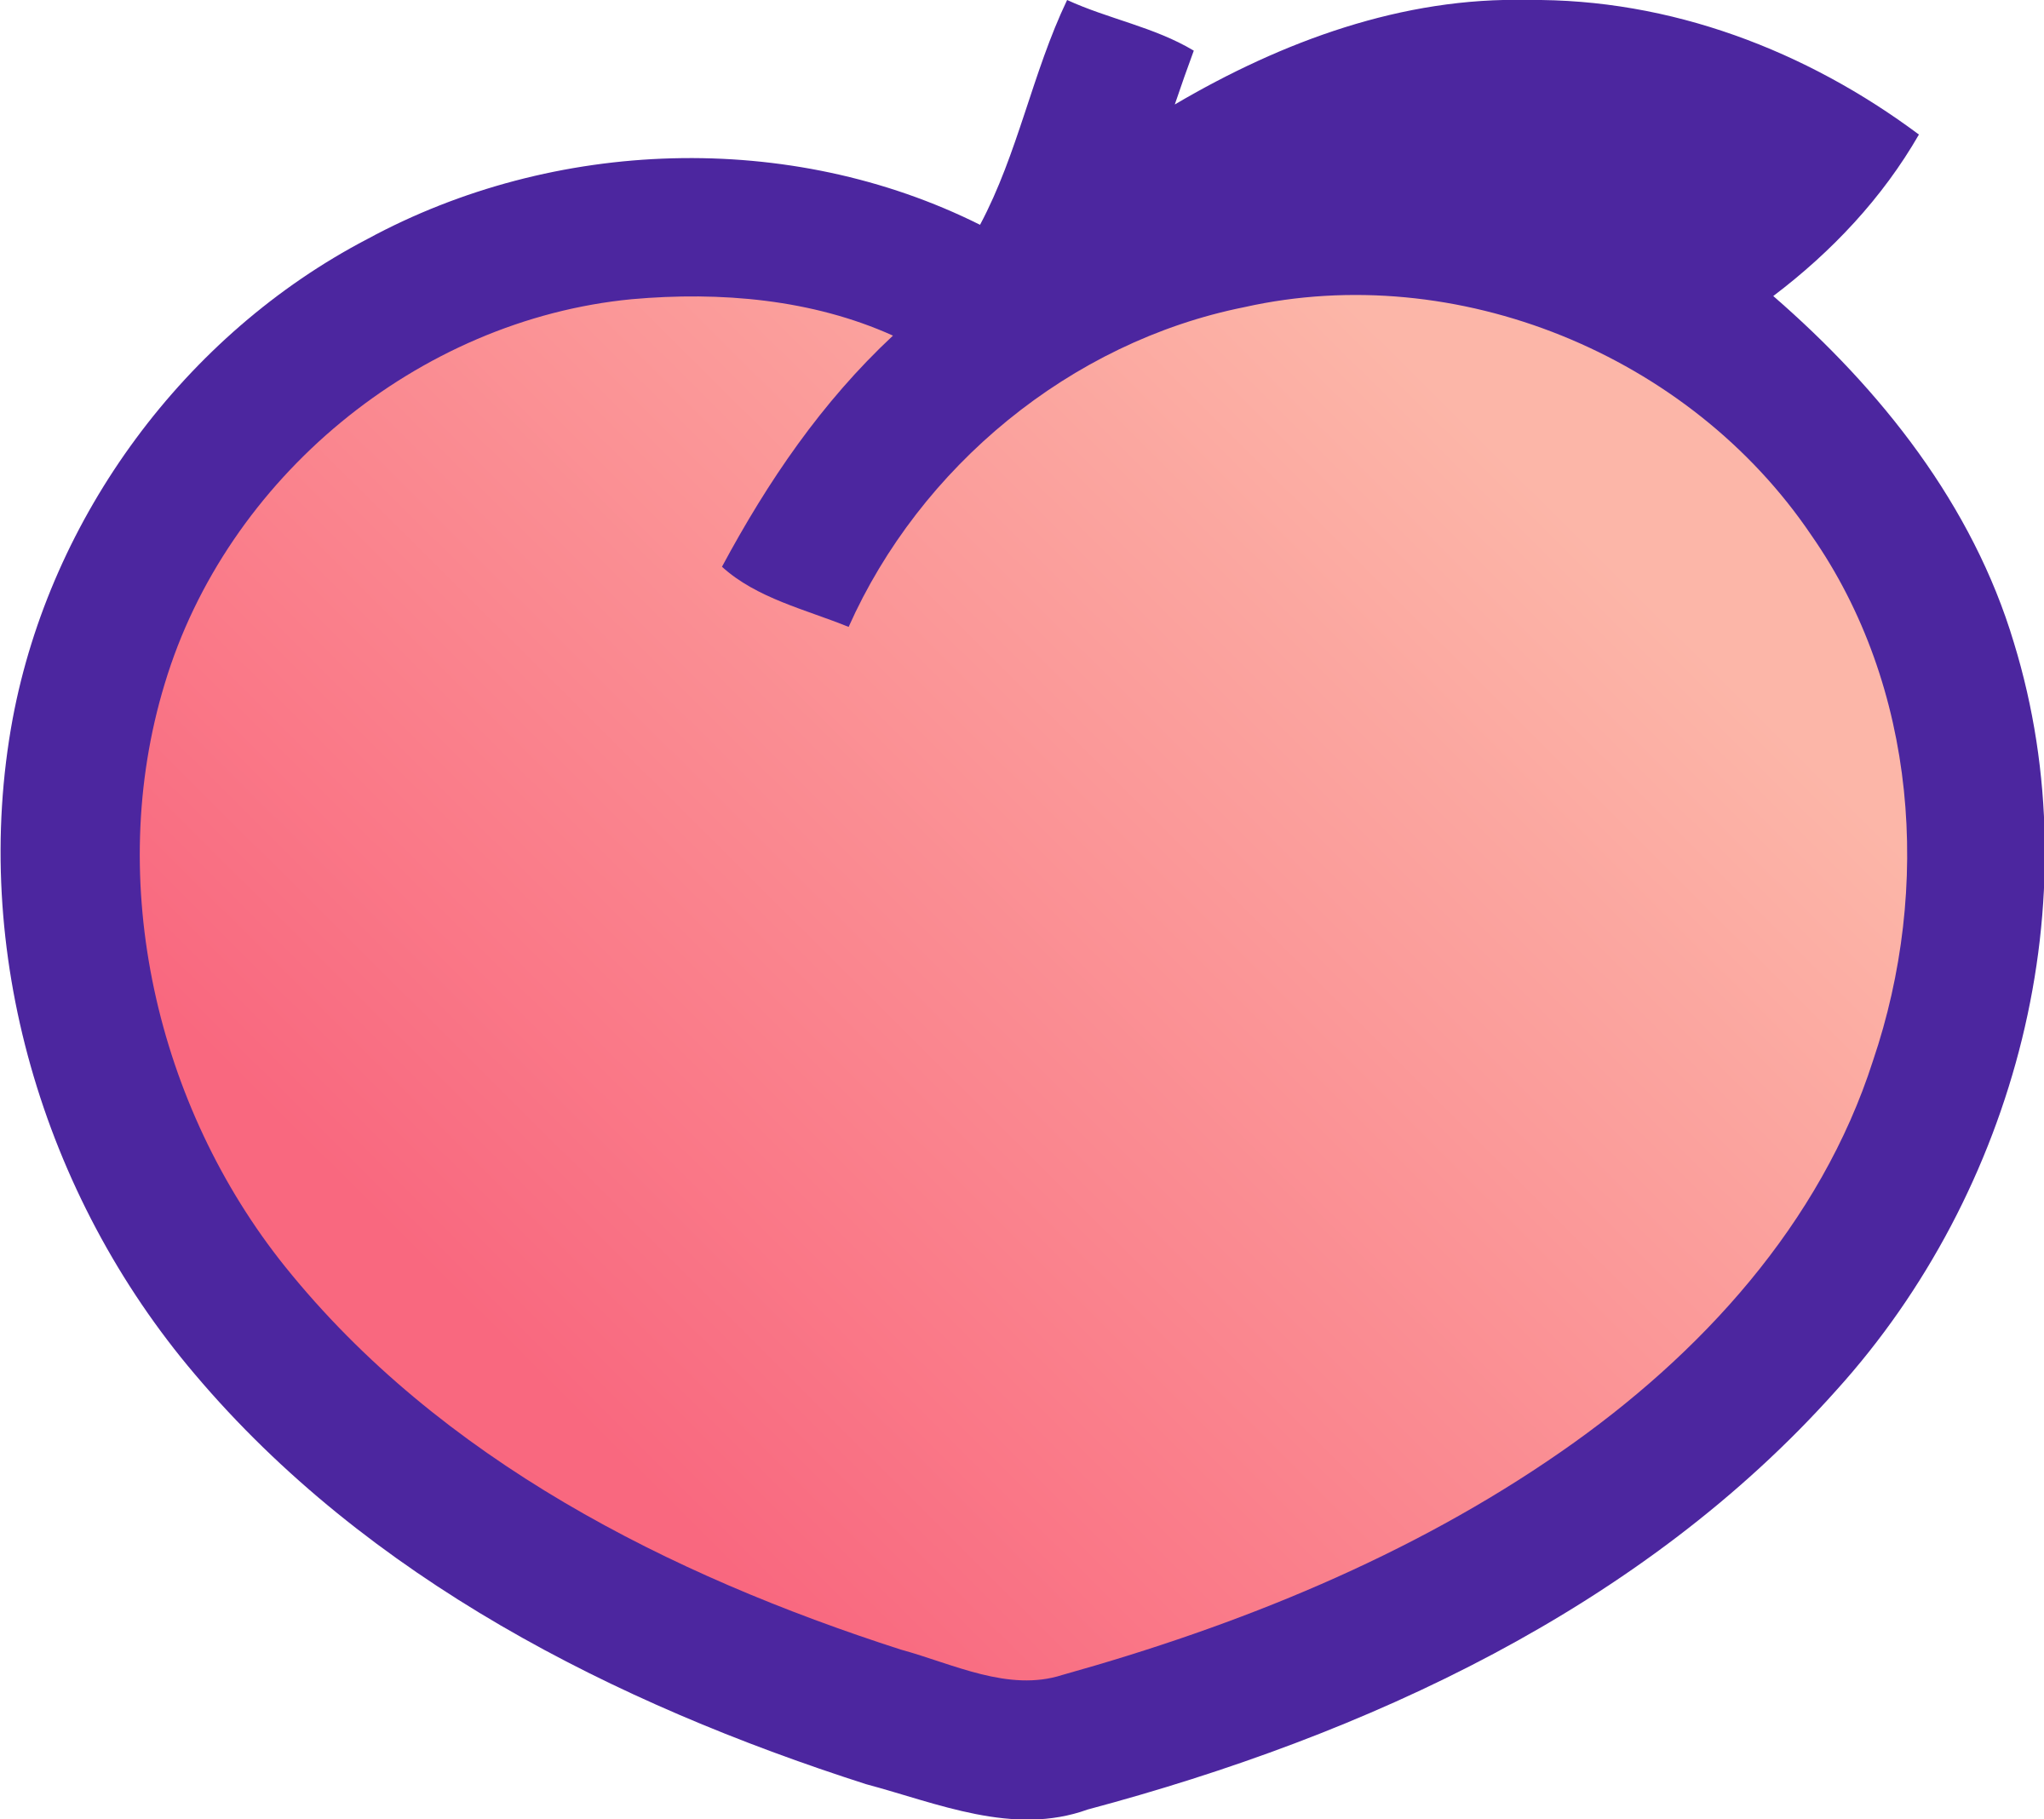 Peach svg logo. Png transparent vector freebie